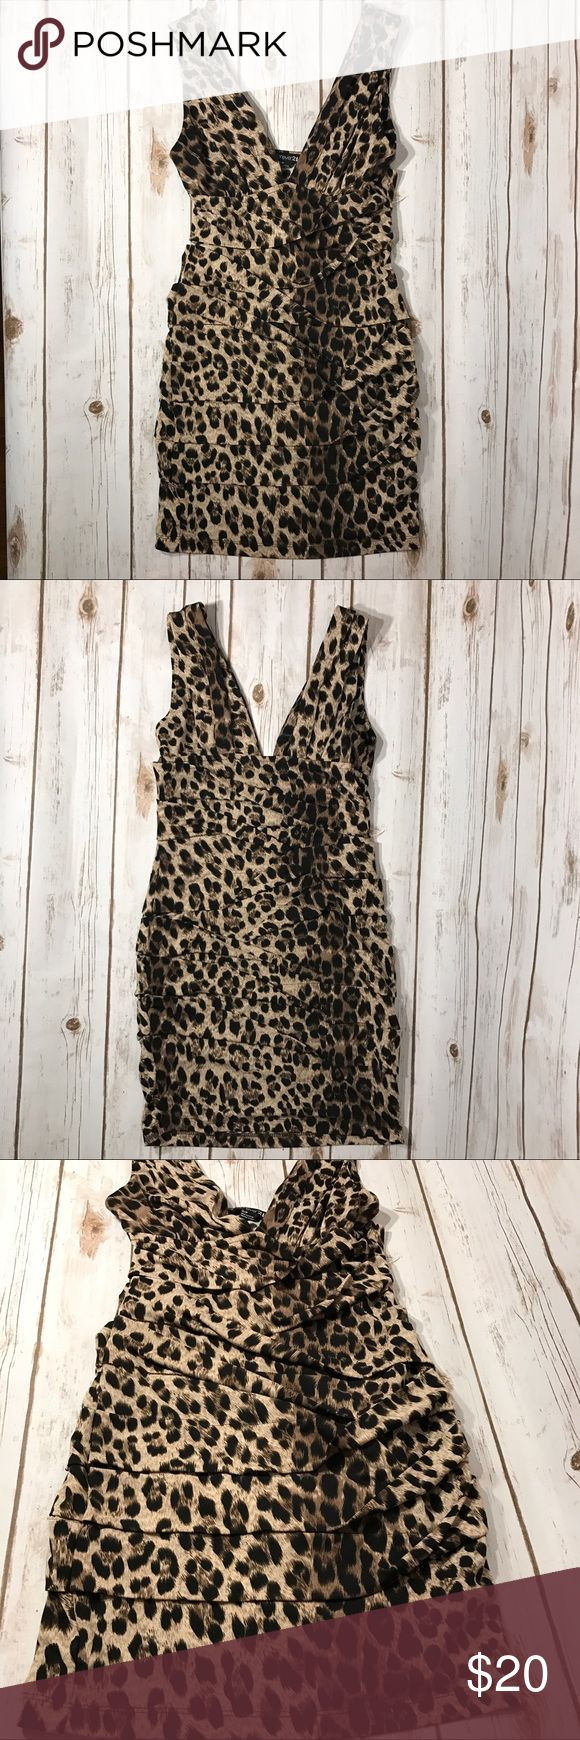 """Forever 21 Animal Print mini dress Gorgeous Forever 21 Sleeveless with overlapping layers Animal Print mini dress.  In good condition. No stains or rips. Size small. Measurements for flat lay: Shoulder to Shoulder (11"""") Armpit to Armpit (13.5"""") Top to Bottom (31"""") forever21 Dresses Mini"""